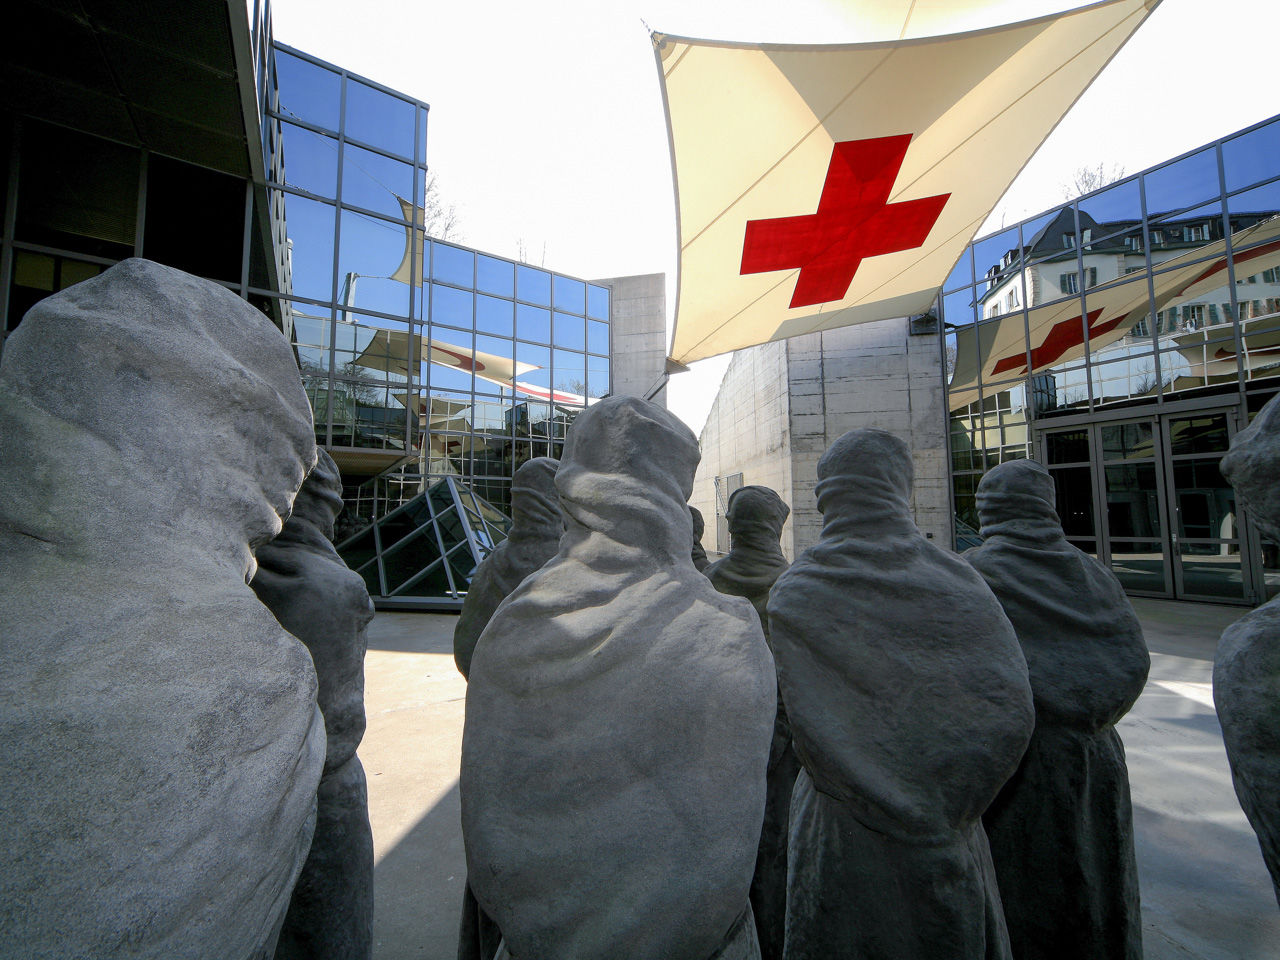 Red Cross and Red Crescent Museum